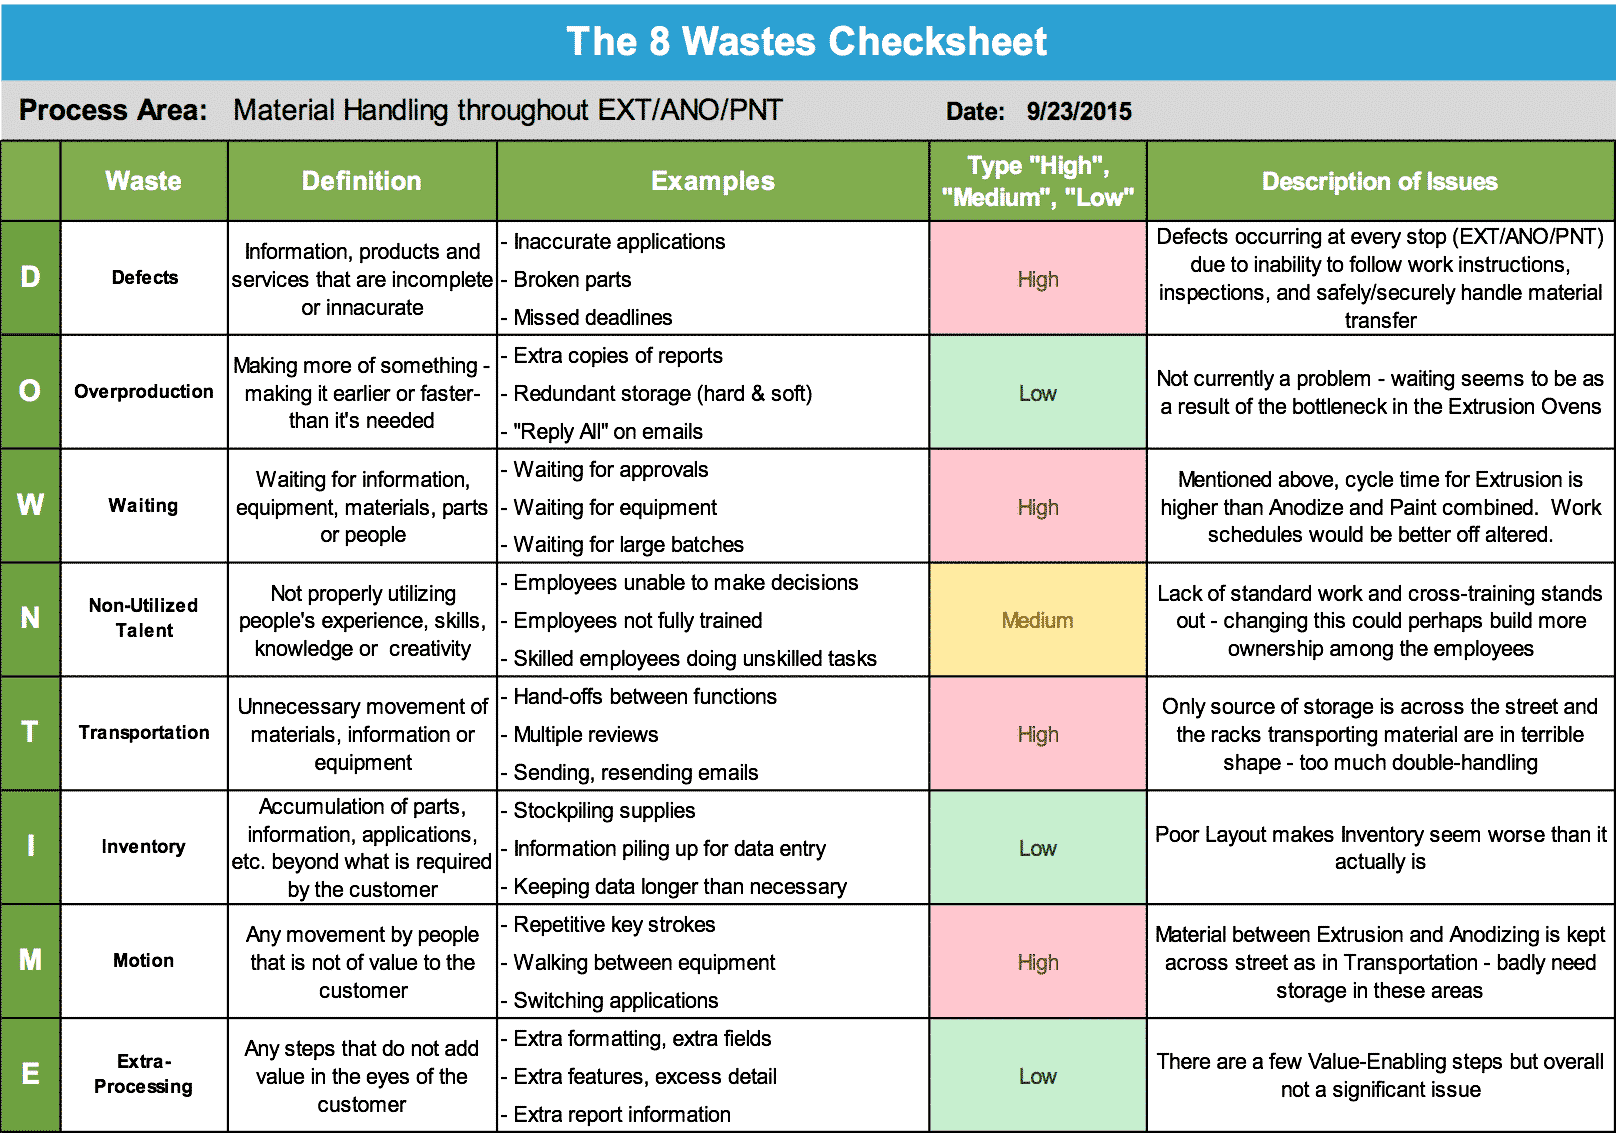 The 8 Wastes Checksheet